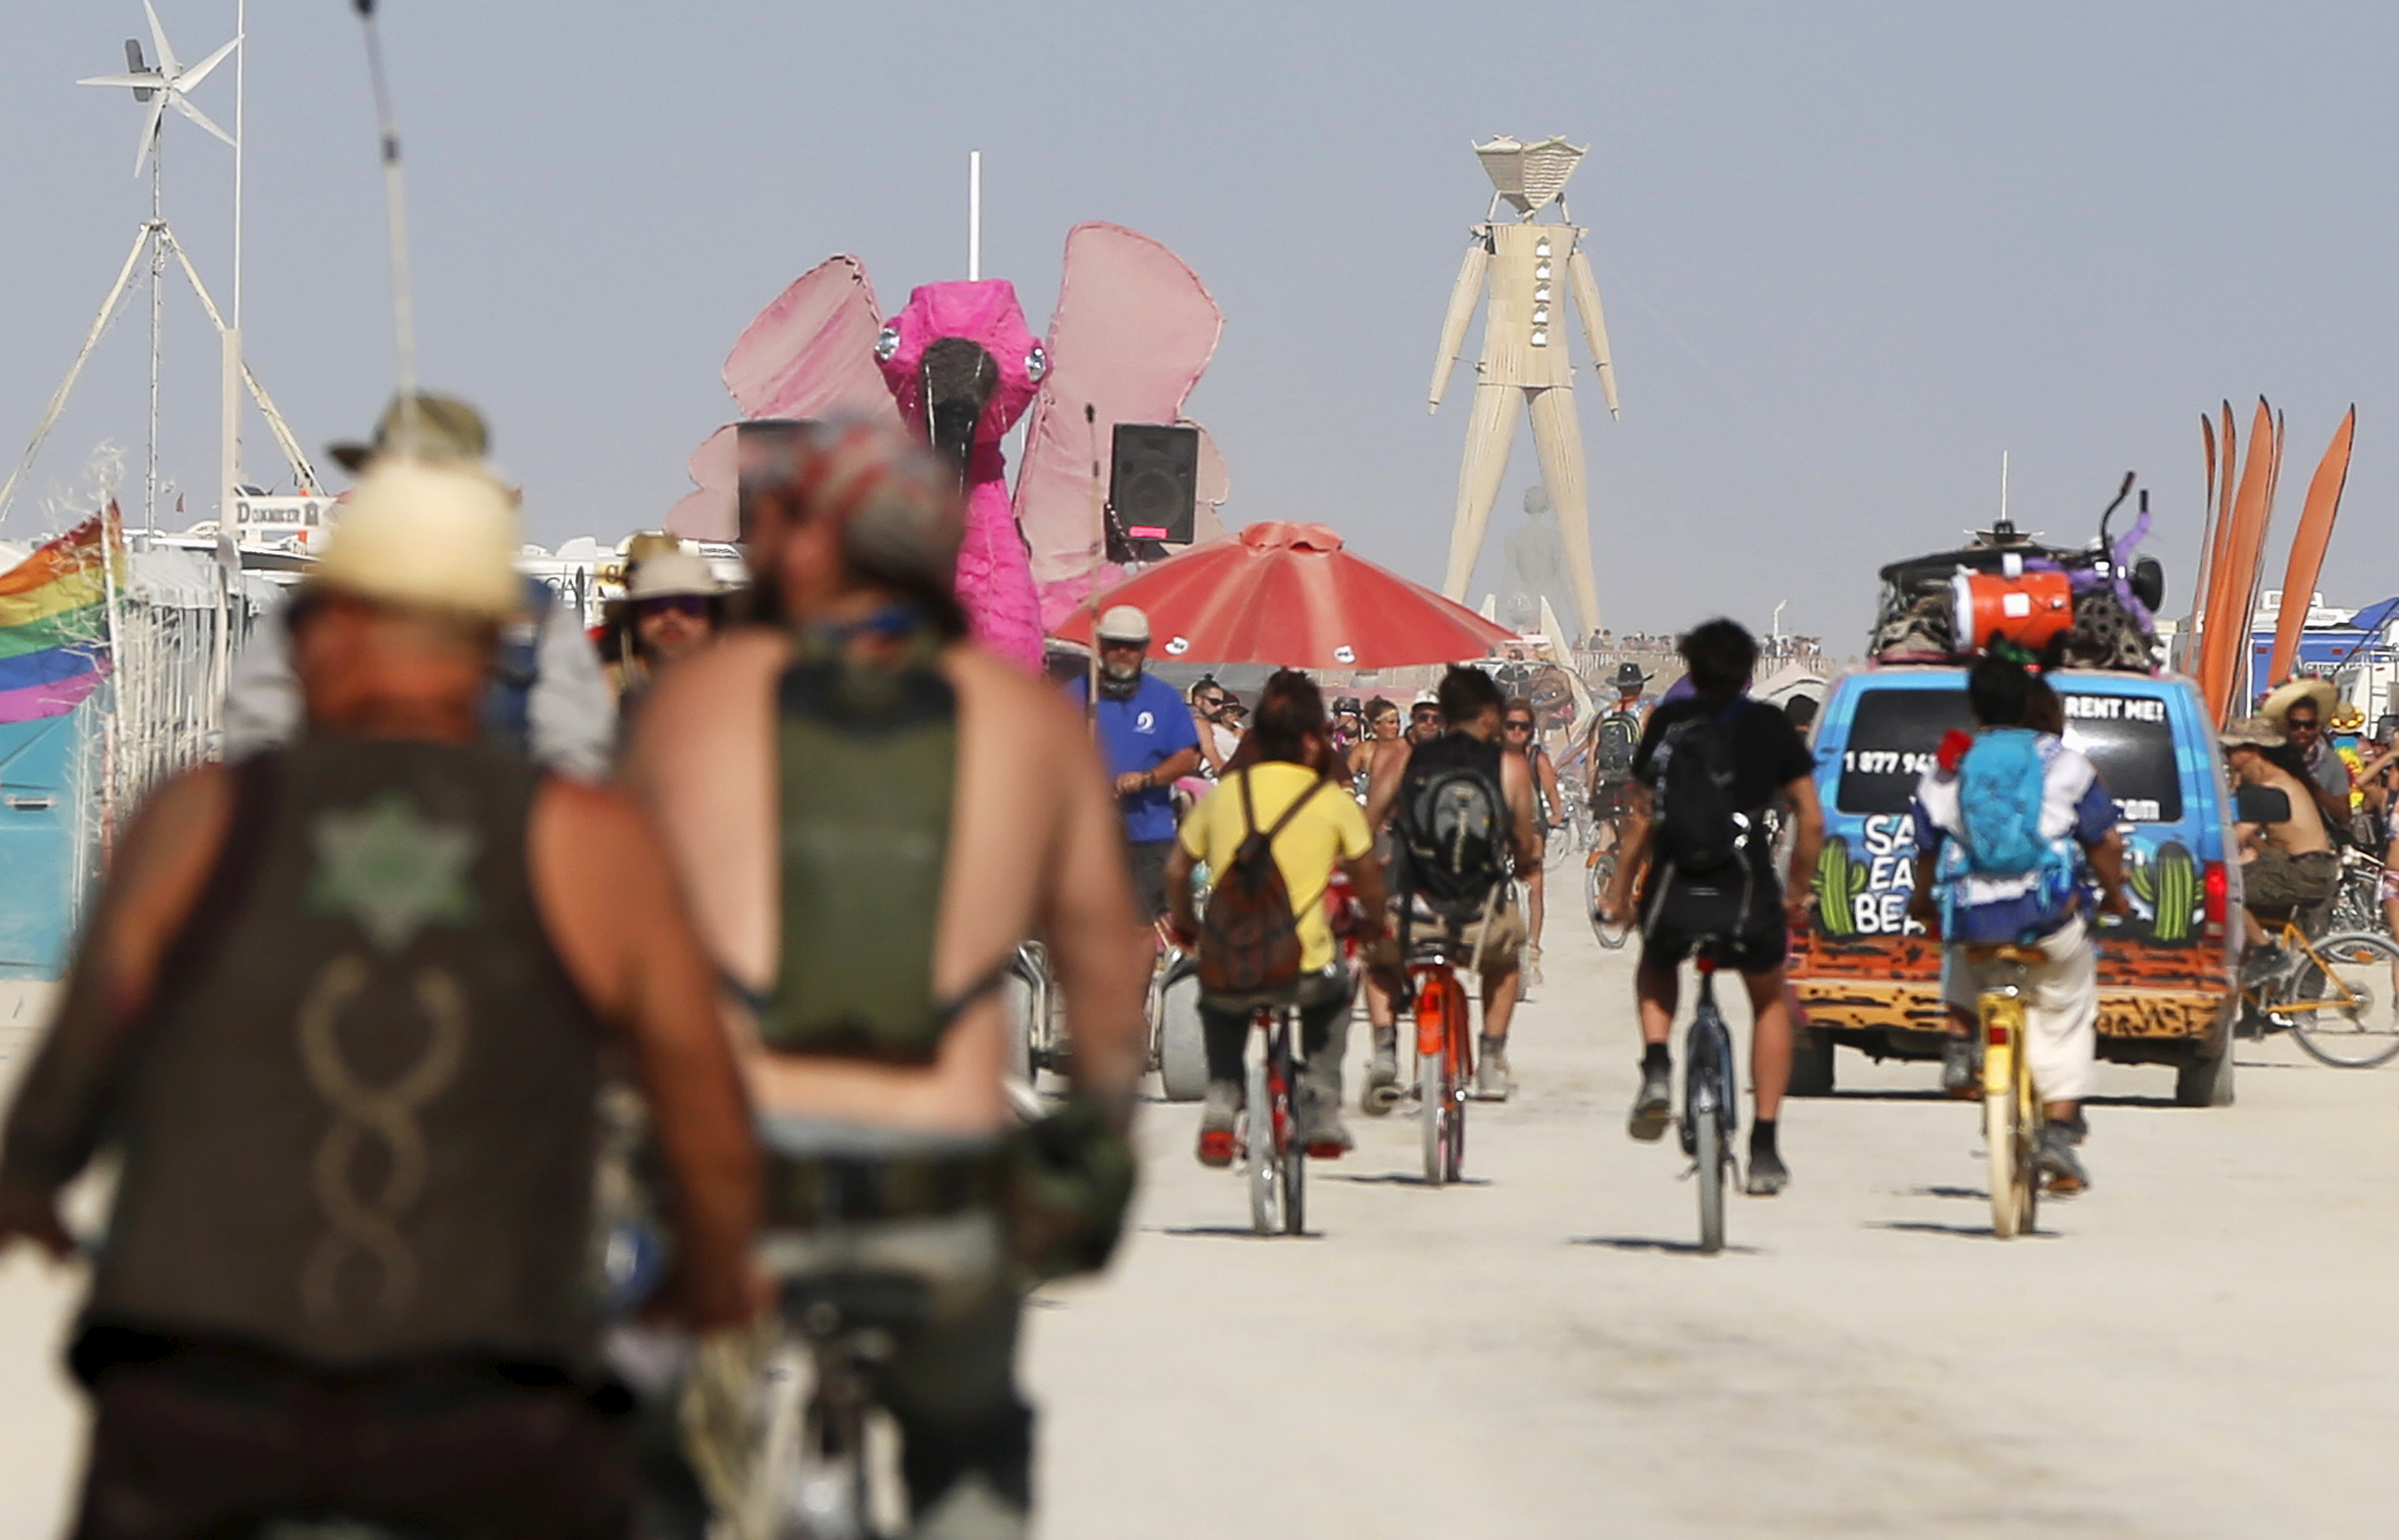 Bikes are a popular mode of transportation at the week-long summertime Burning Man festival in the Black Rock Desert of Nevada. Photo by Jim Urquhart/Reuters